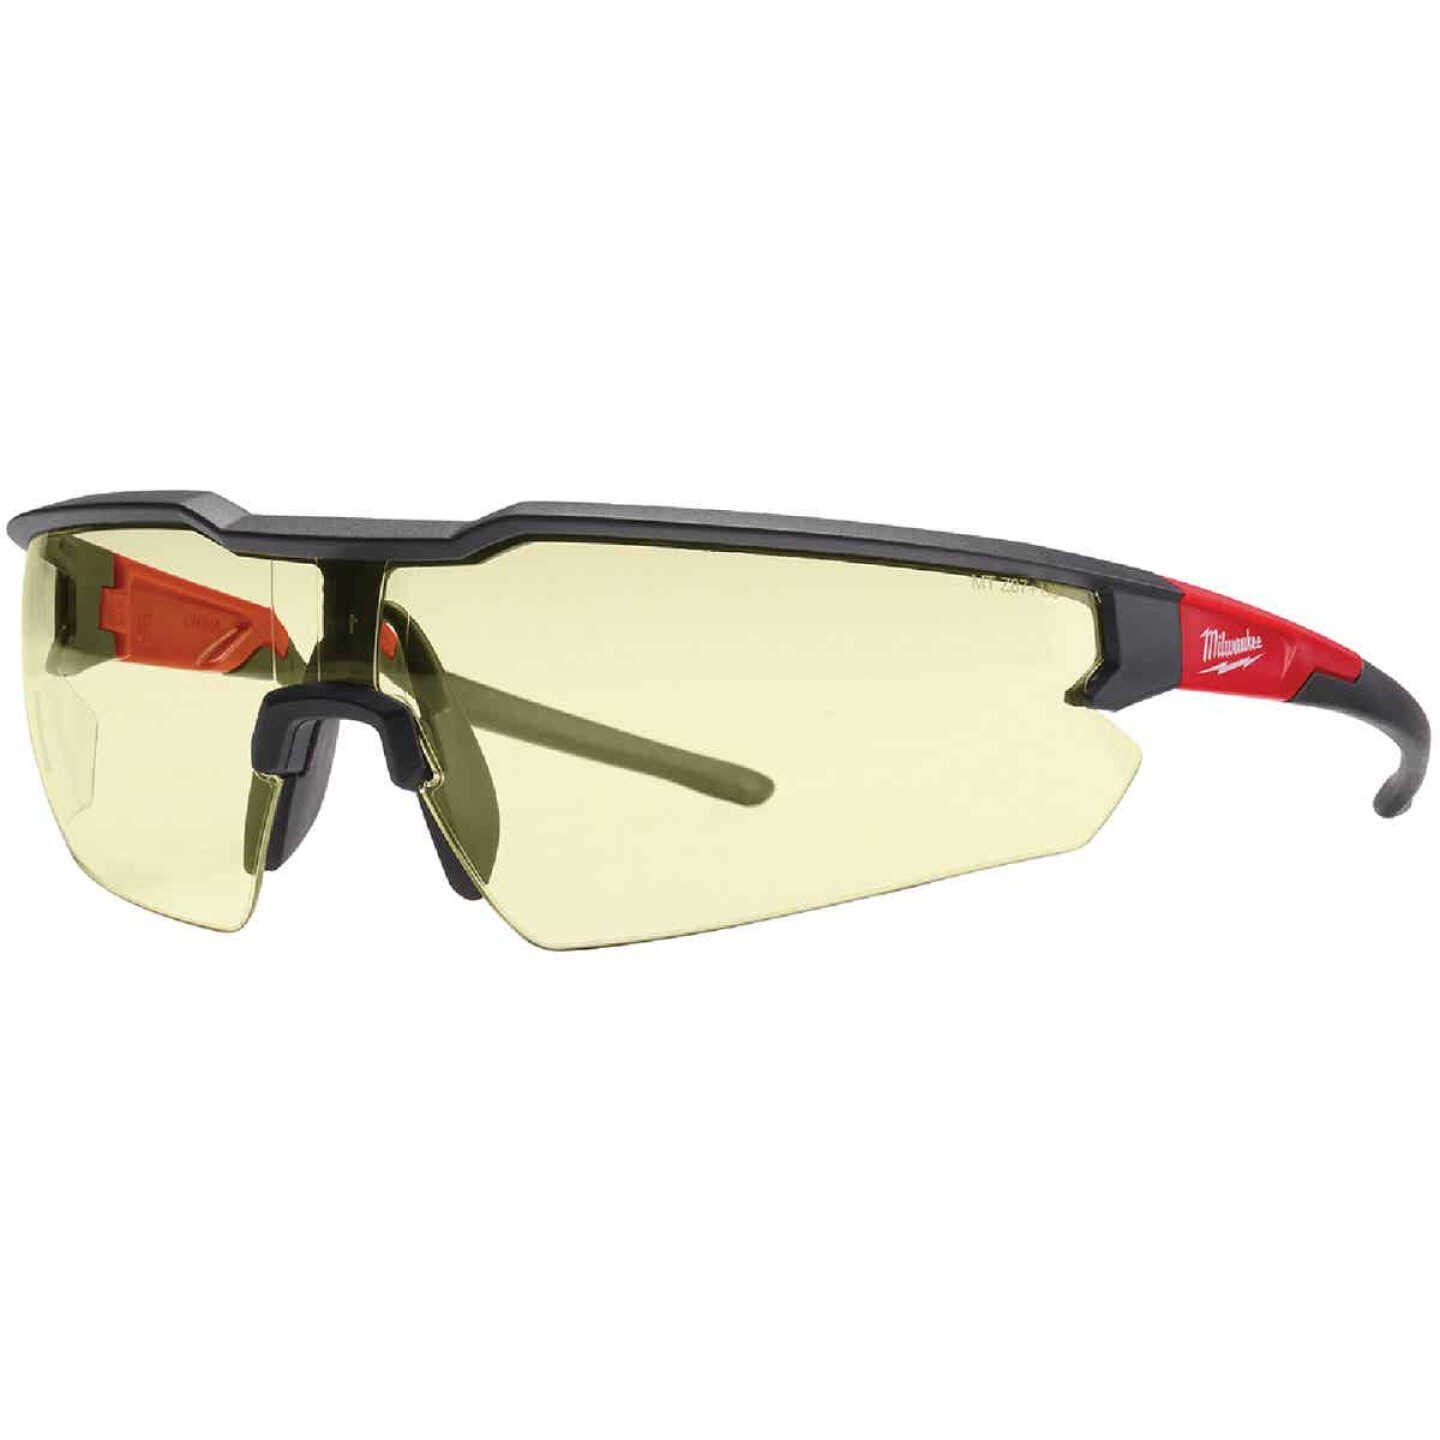 Milwaukee Red & Black Frame Safety Glasses with Yellow Anti-Scratch Lenses Image 1